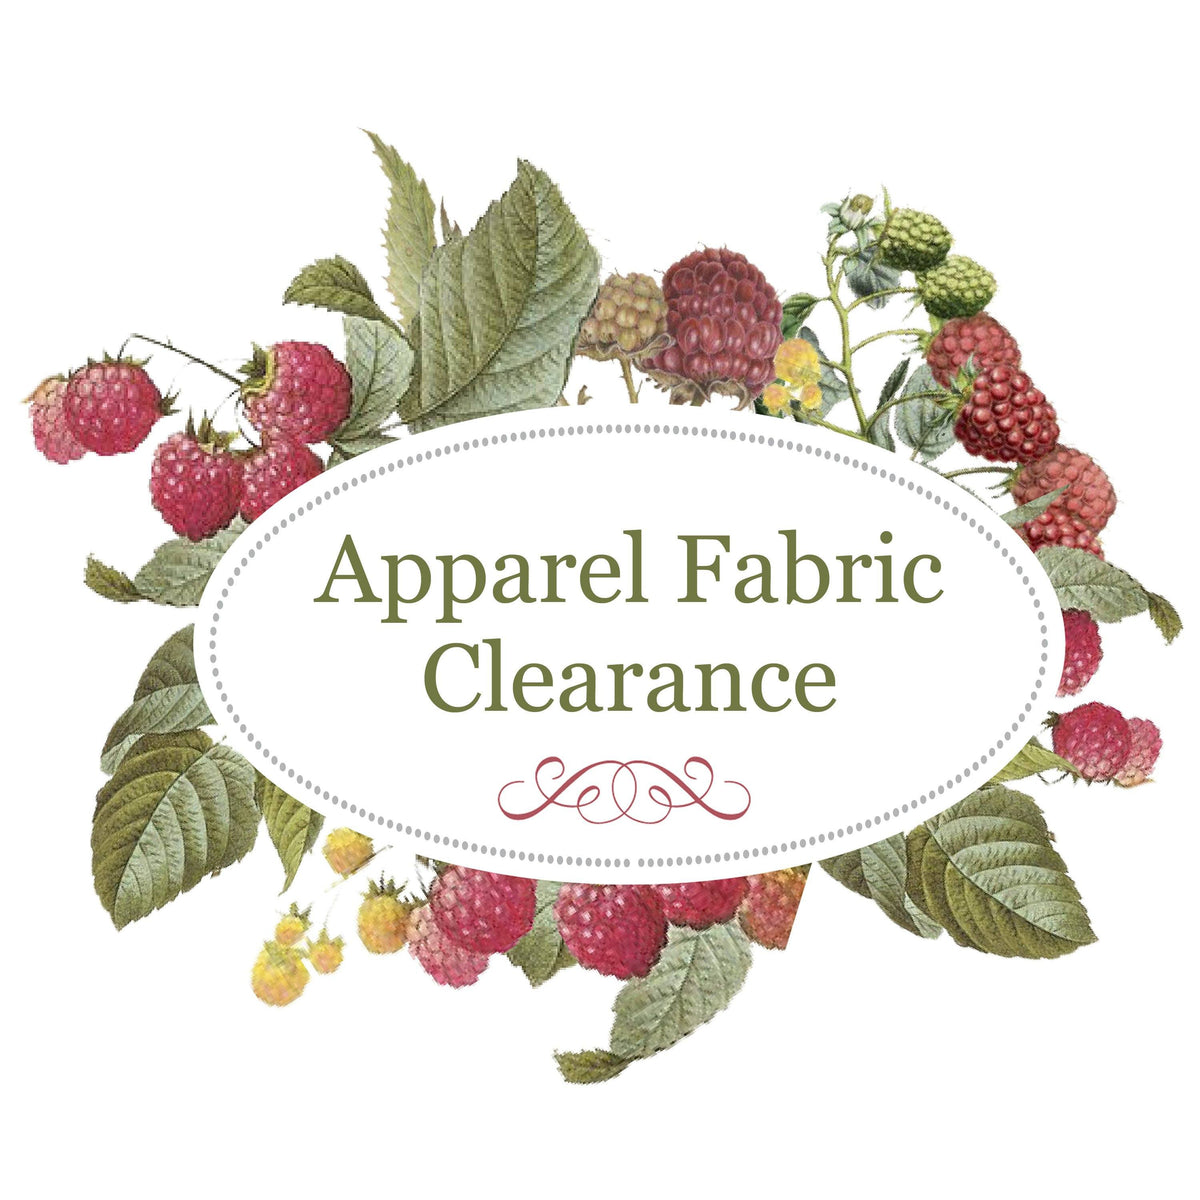 Apparel Fabric Clearance